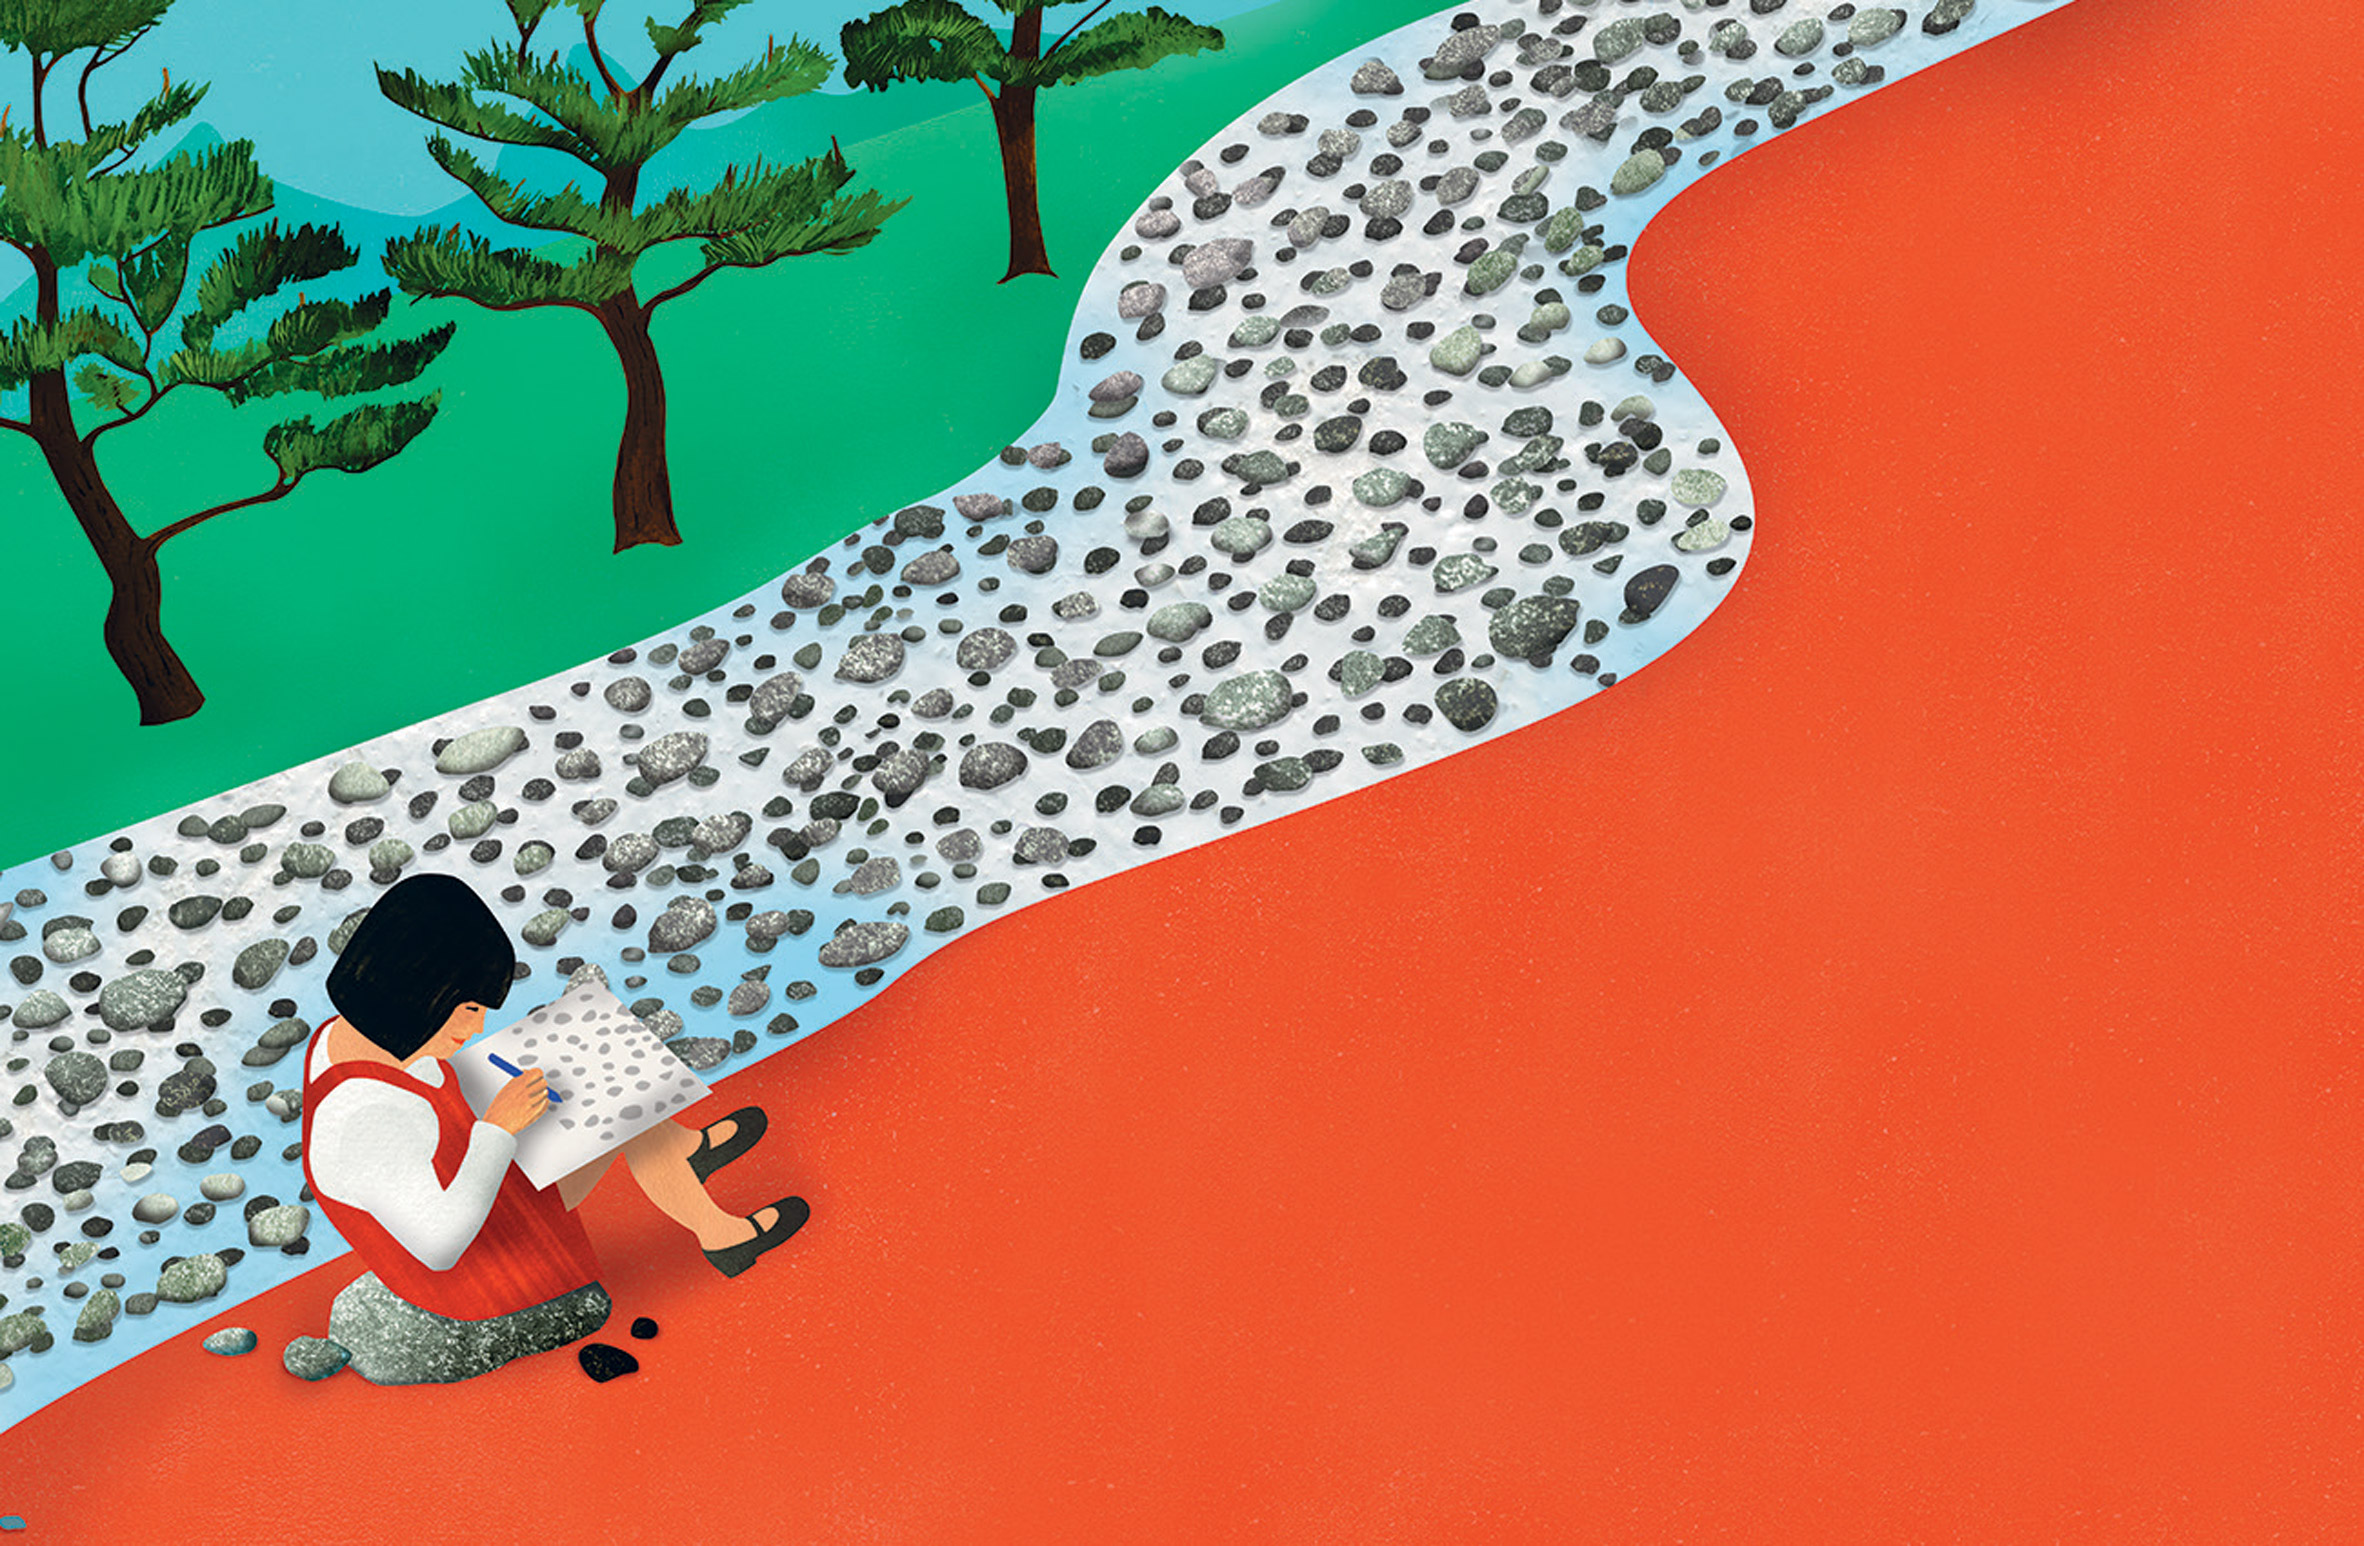 Yayoi Kusama's life and career illustrated for new children's book